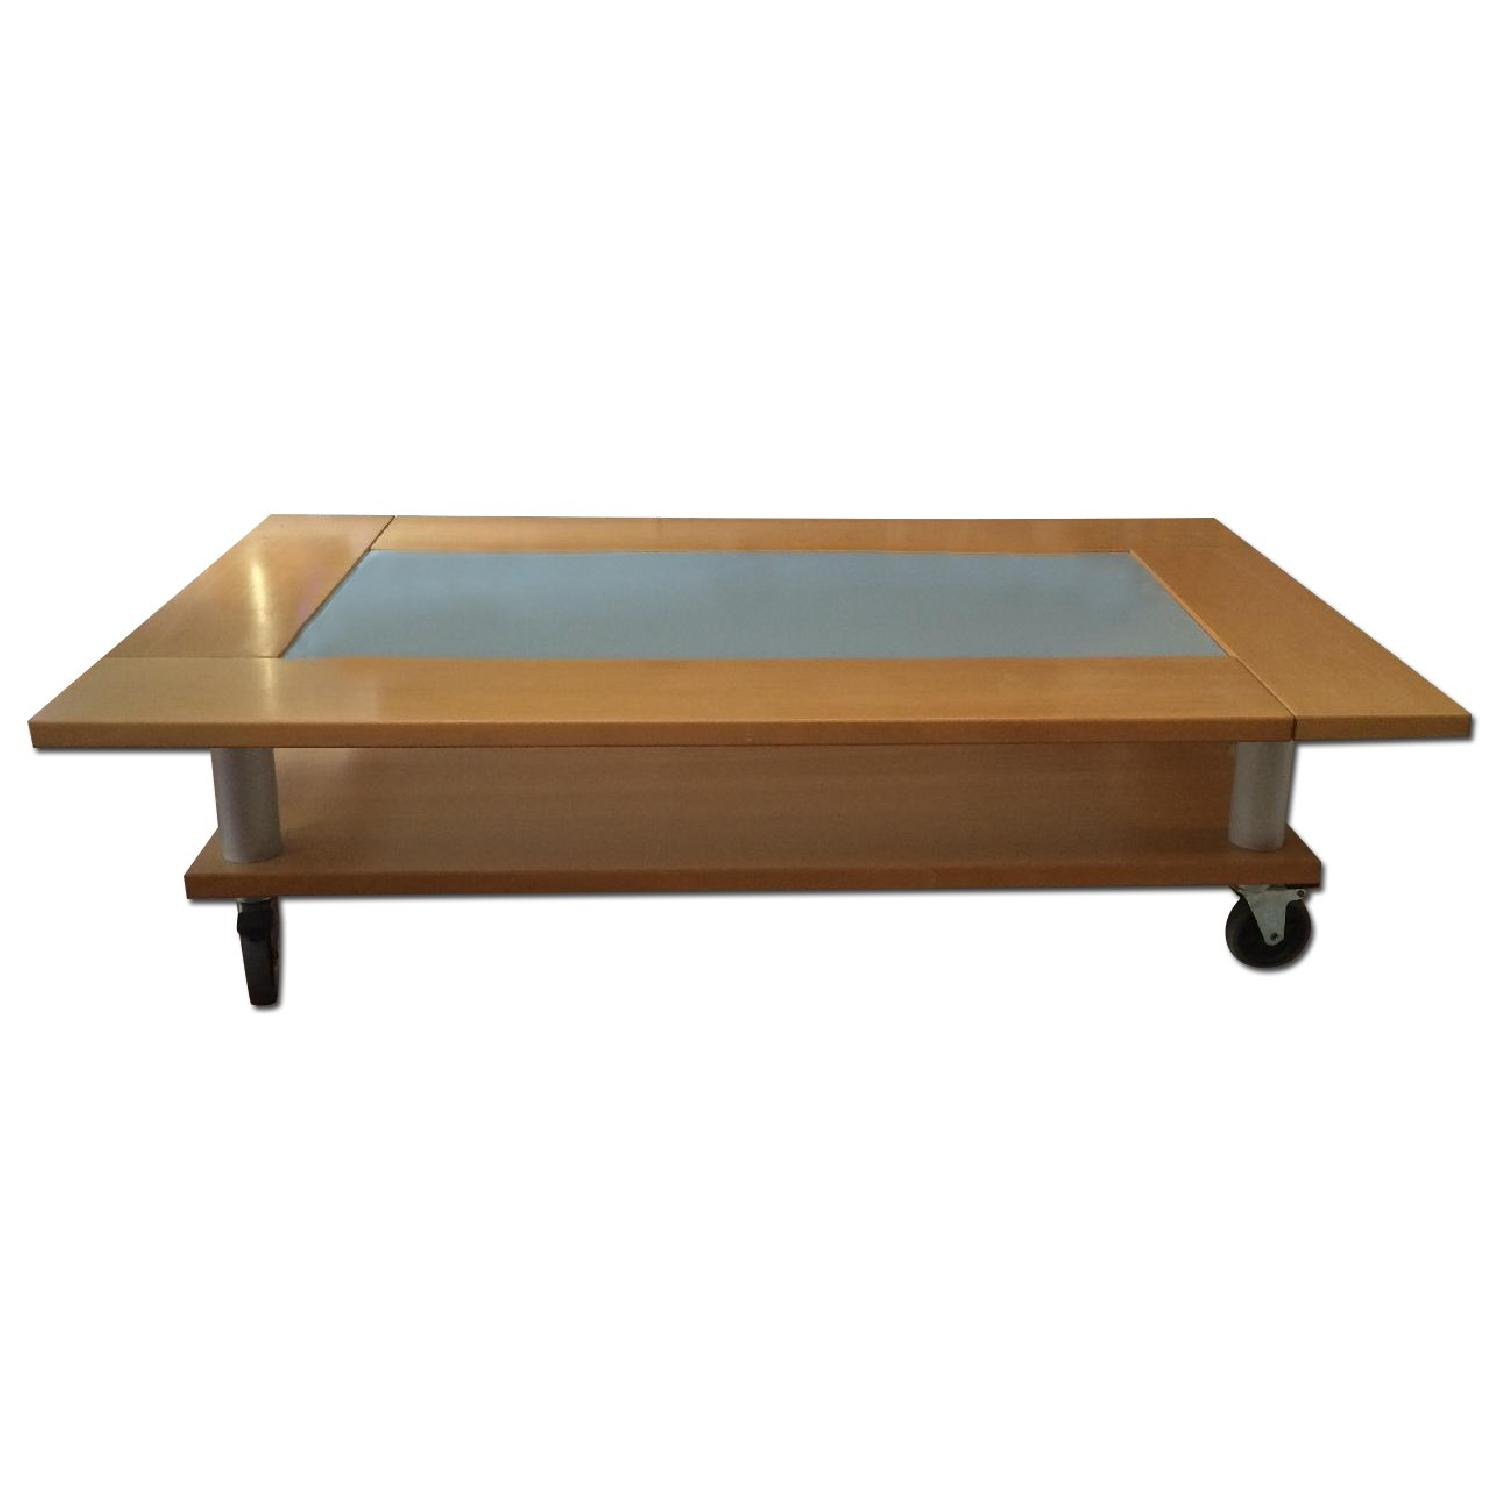 Two-Tier Coffee Table on Wheels - image-0